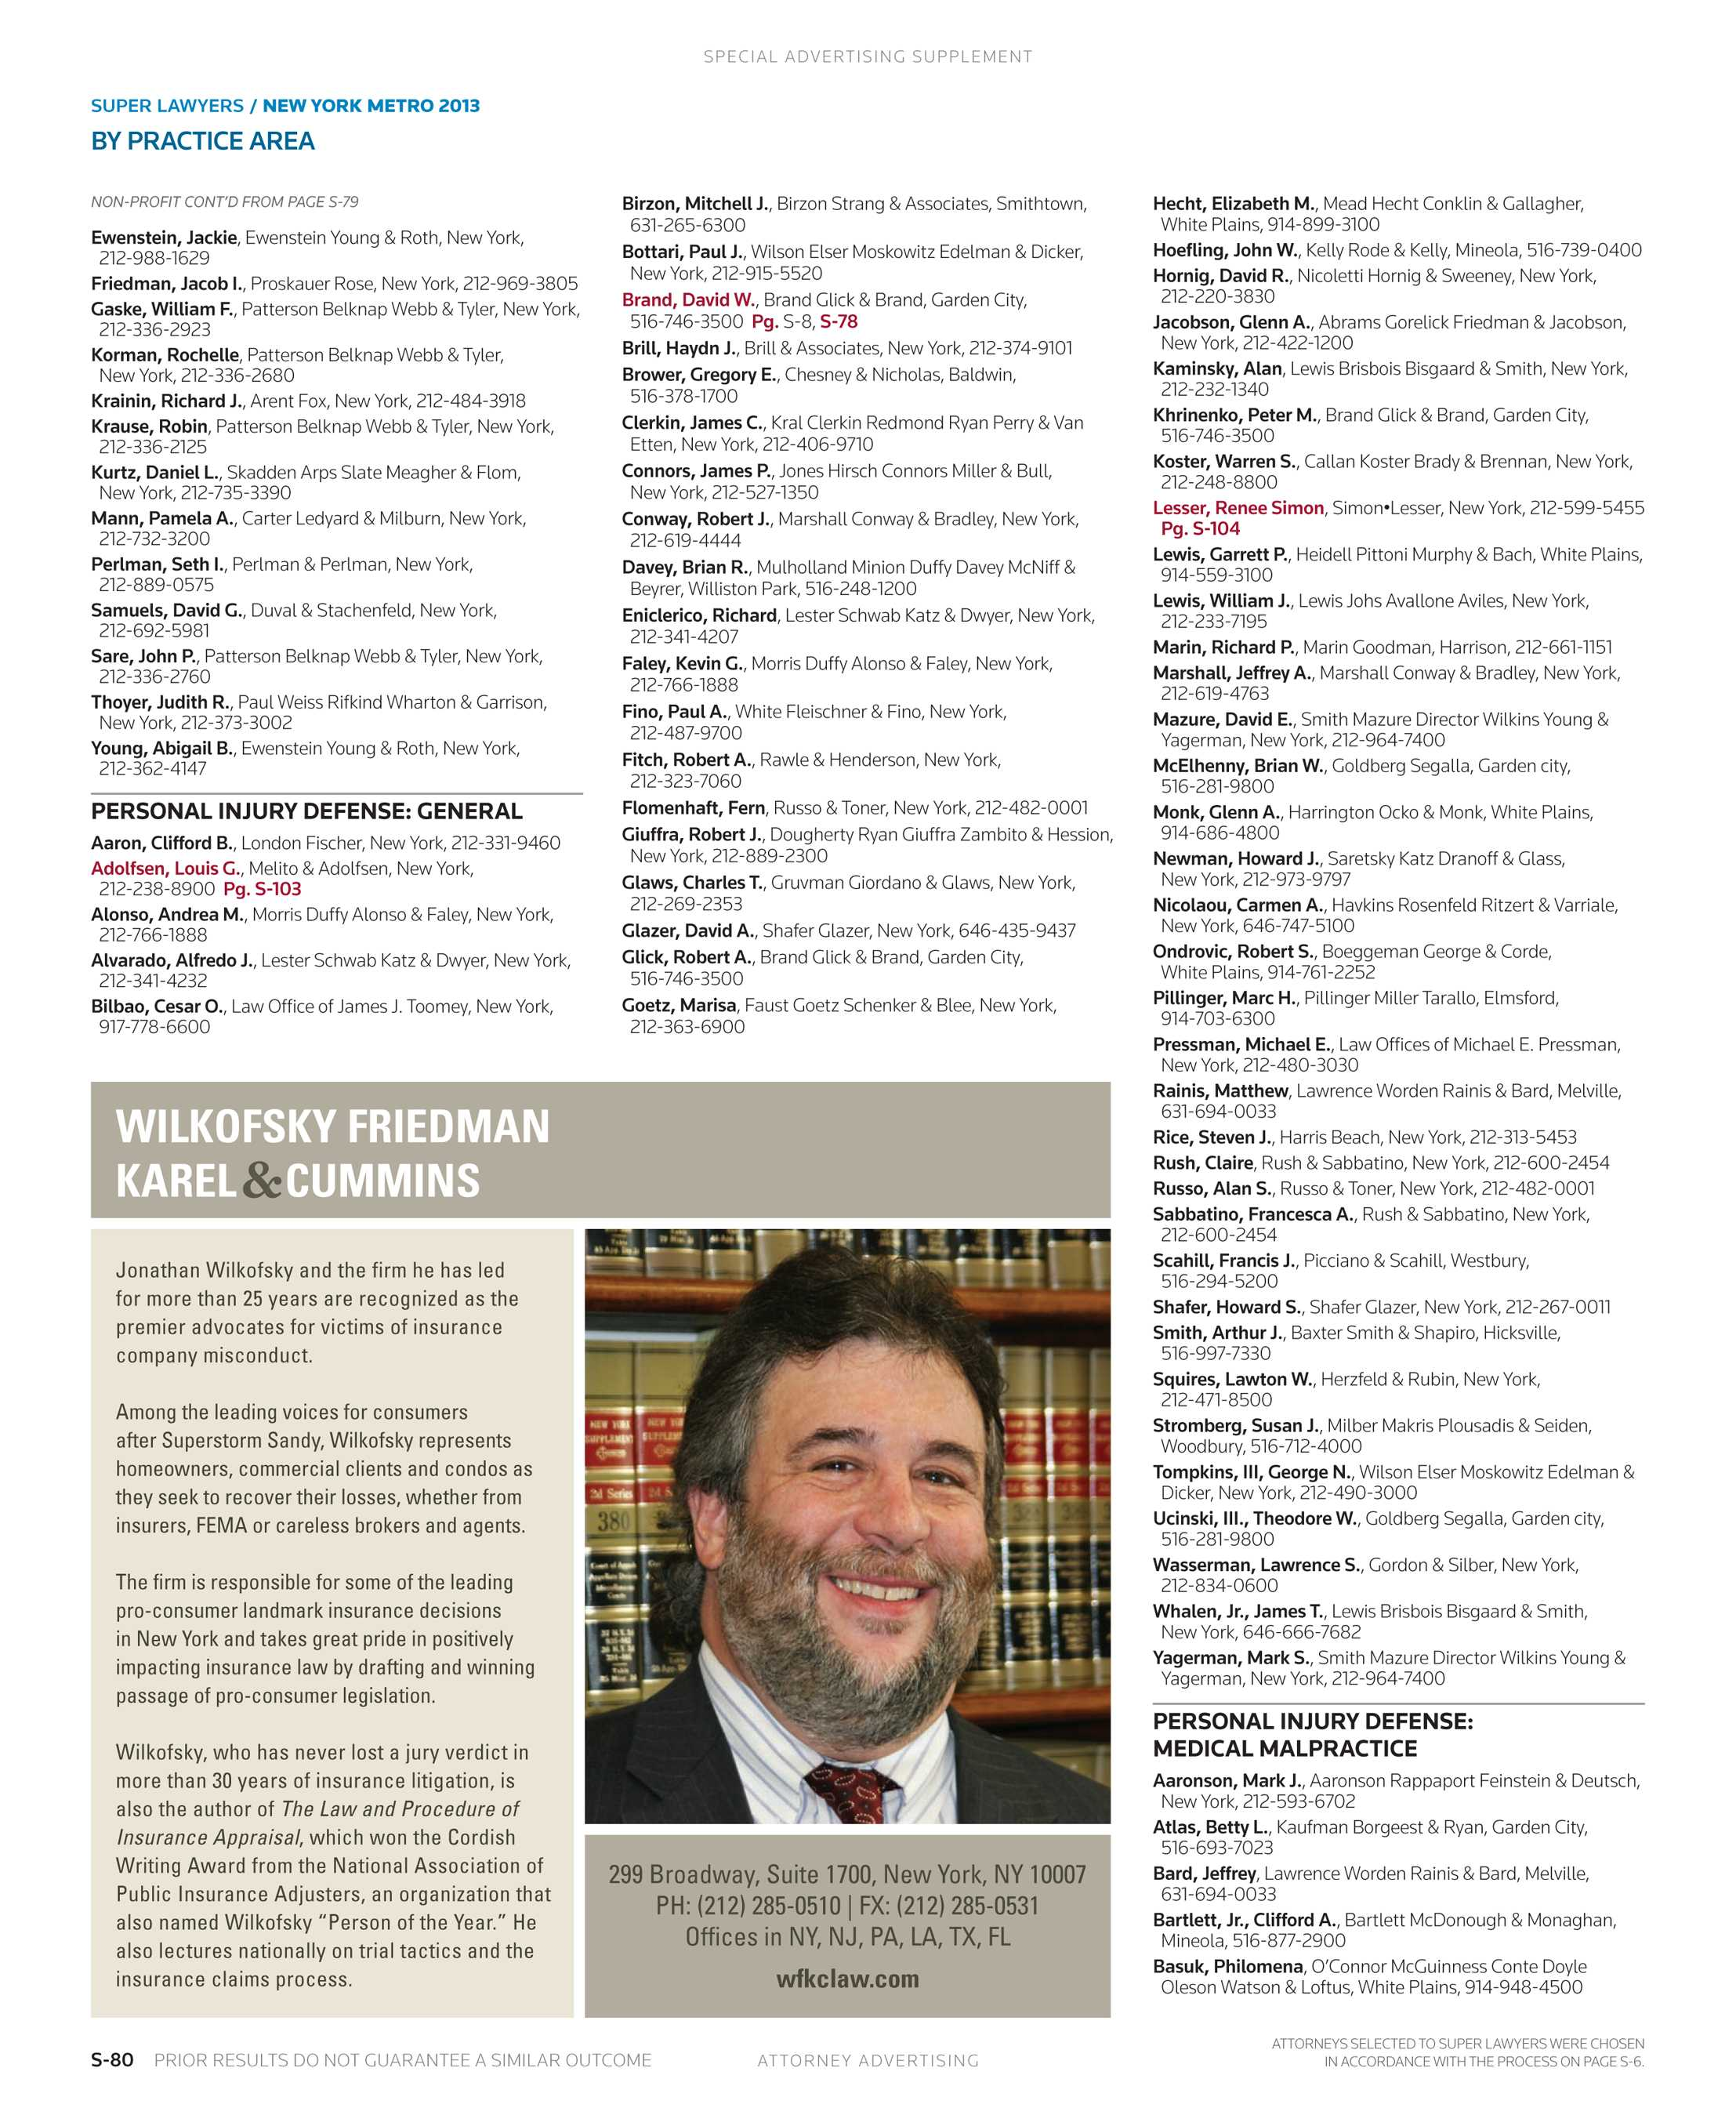 Super Lawyers New York Metro 2013 Supplement To The New York